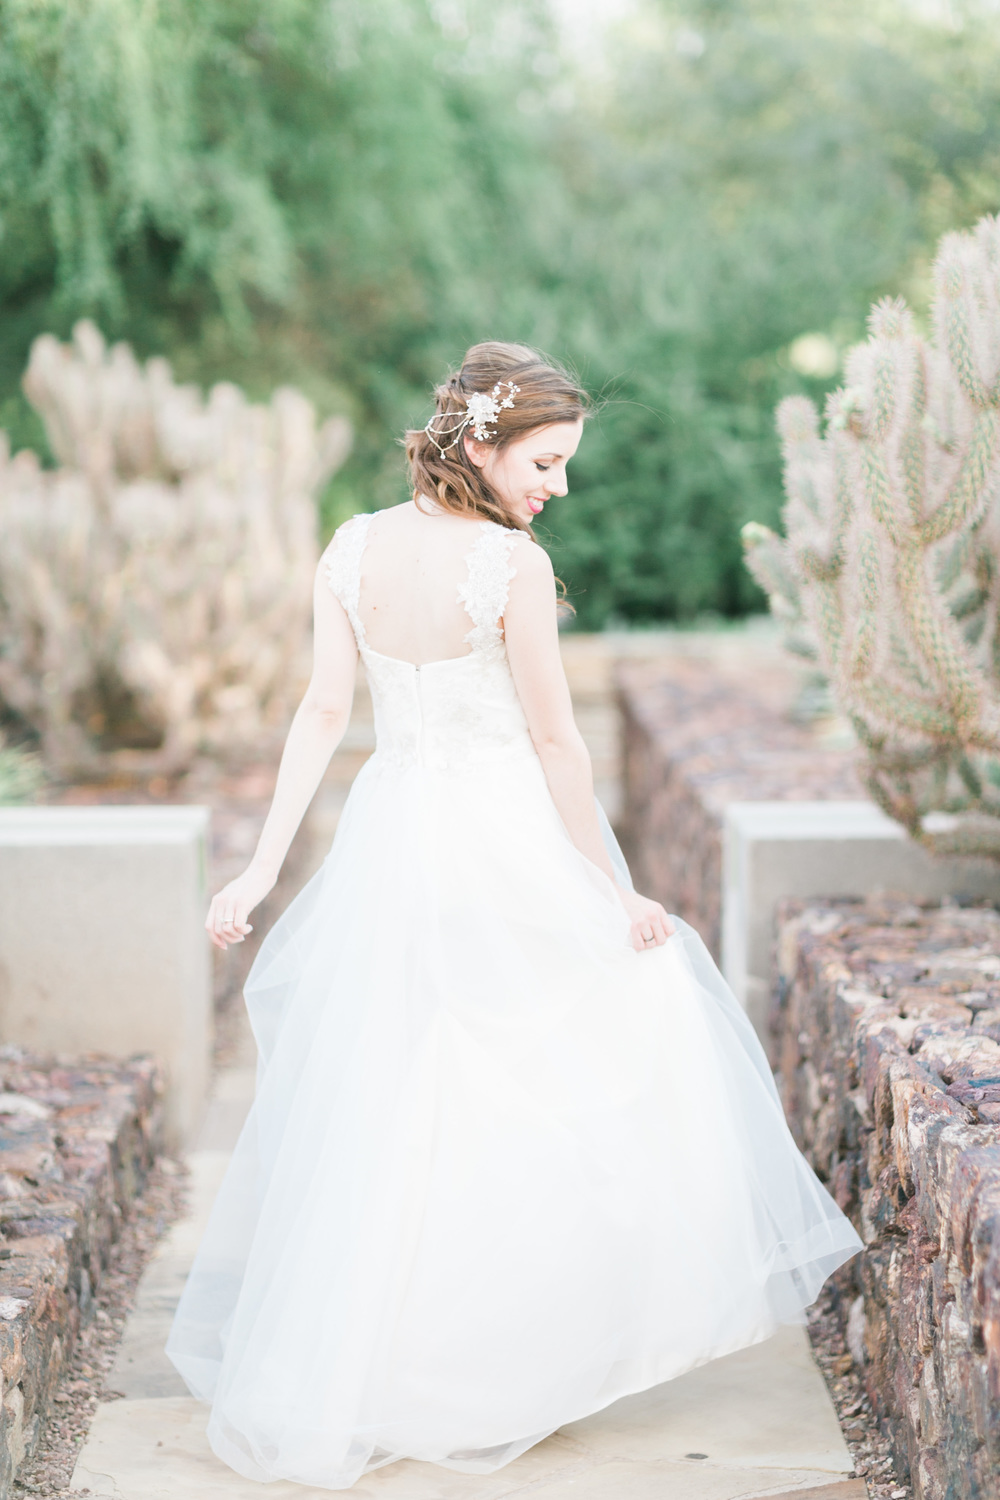 Phoenix Desert Botanical Gardens Wedding. Bride twirling in her dress